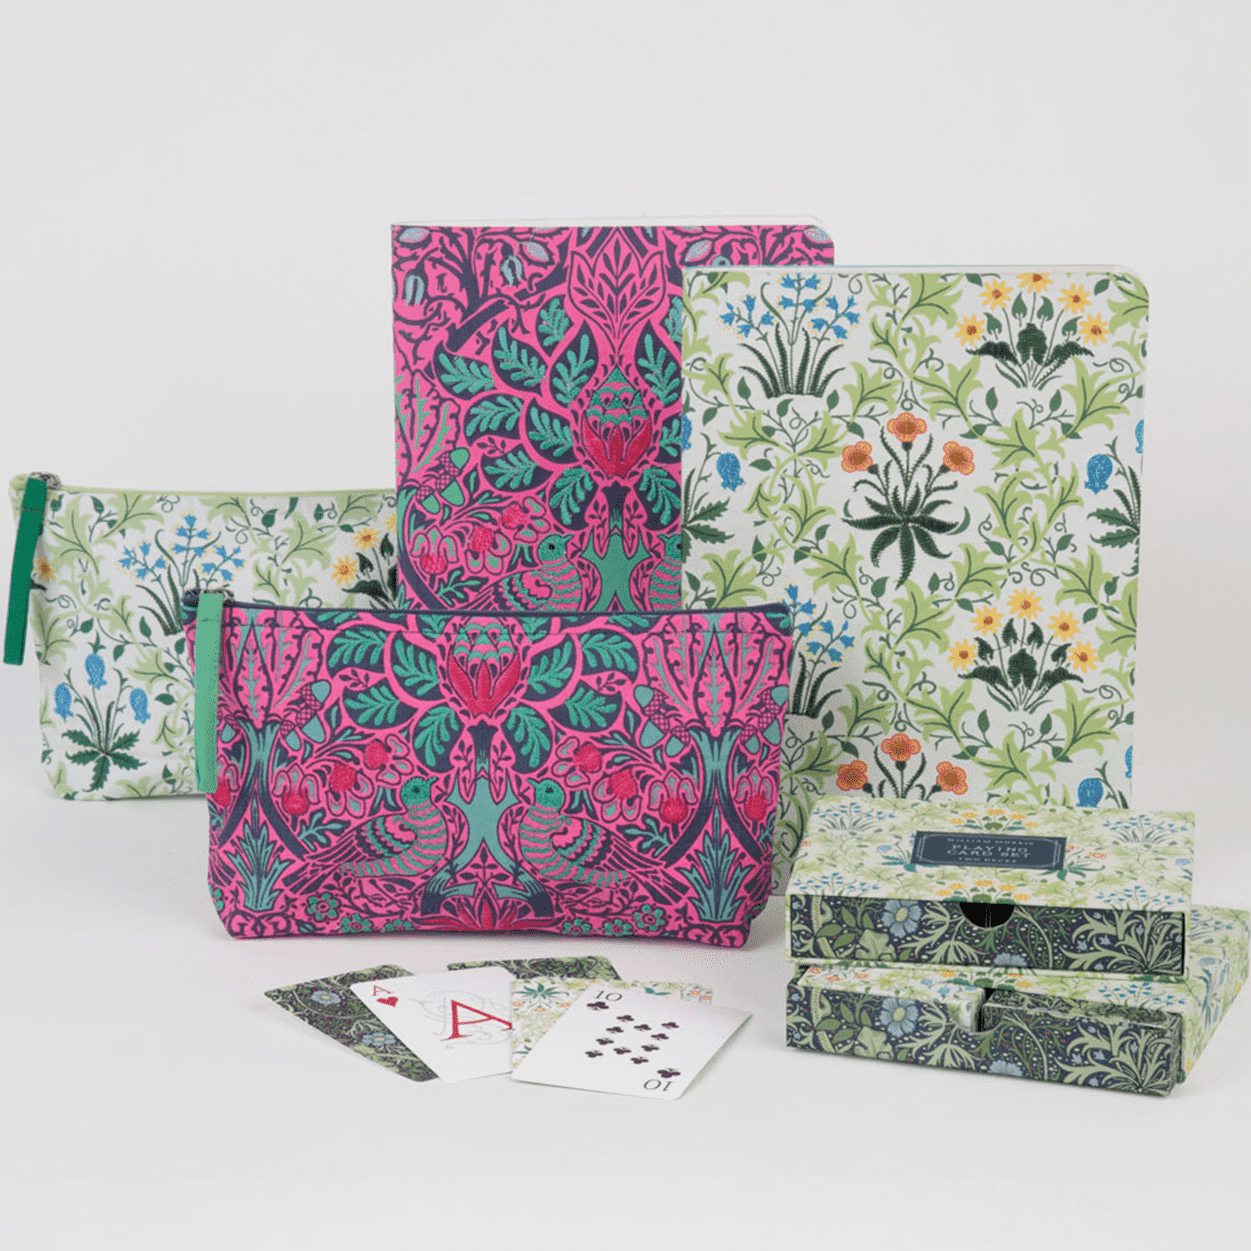 William Morris Celandine Handmade Embroidered Journal Journals and Notebooks Galison